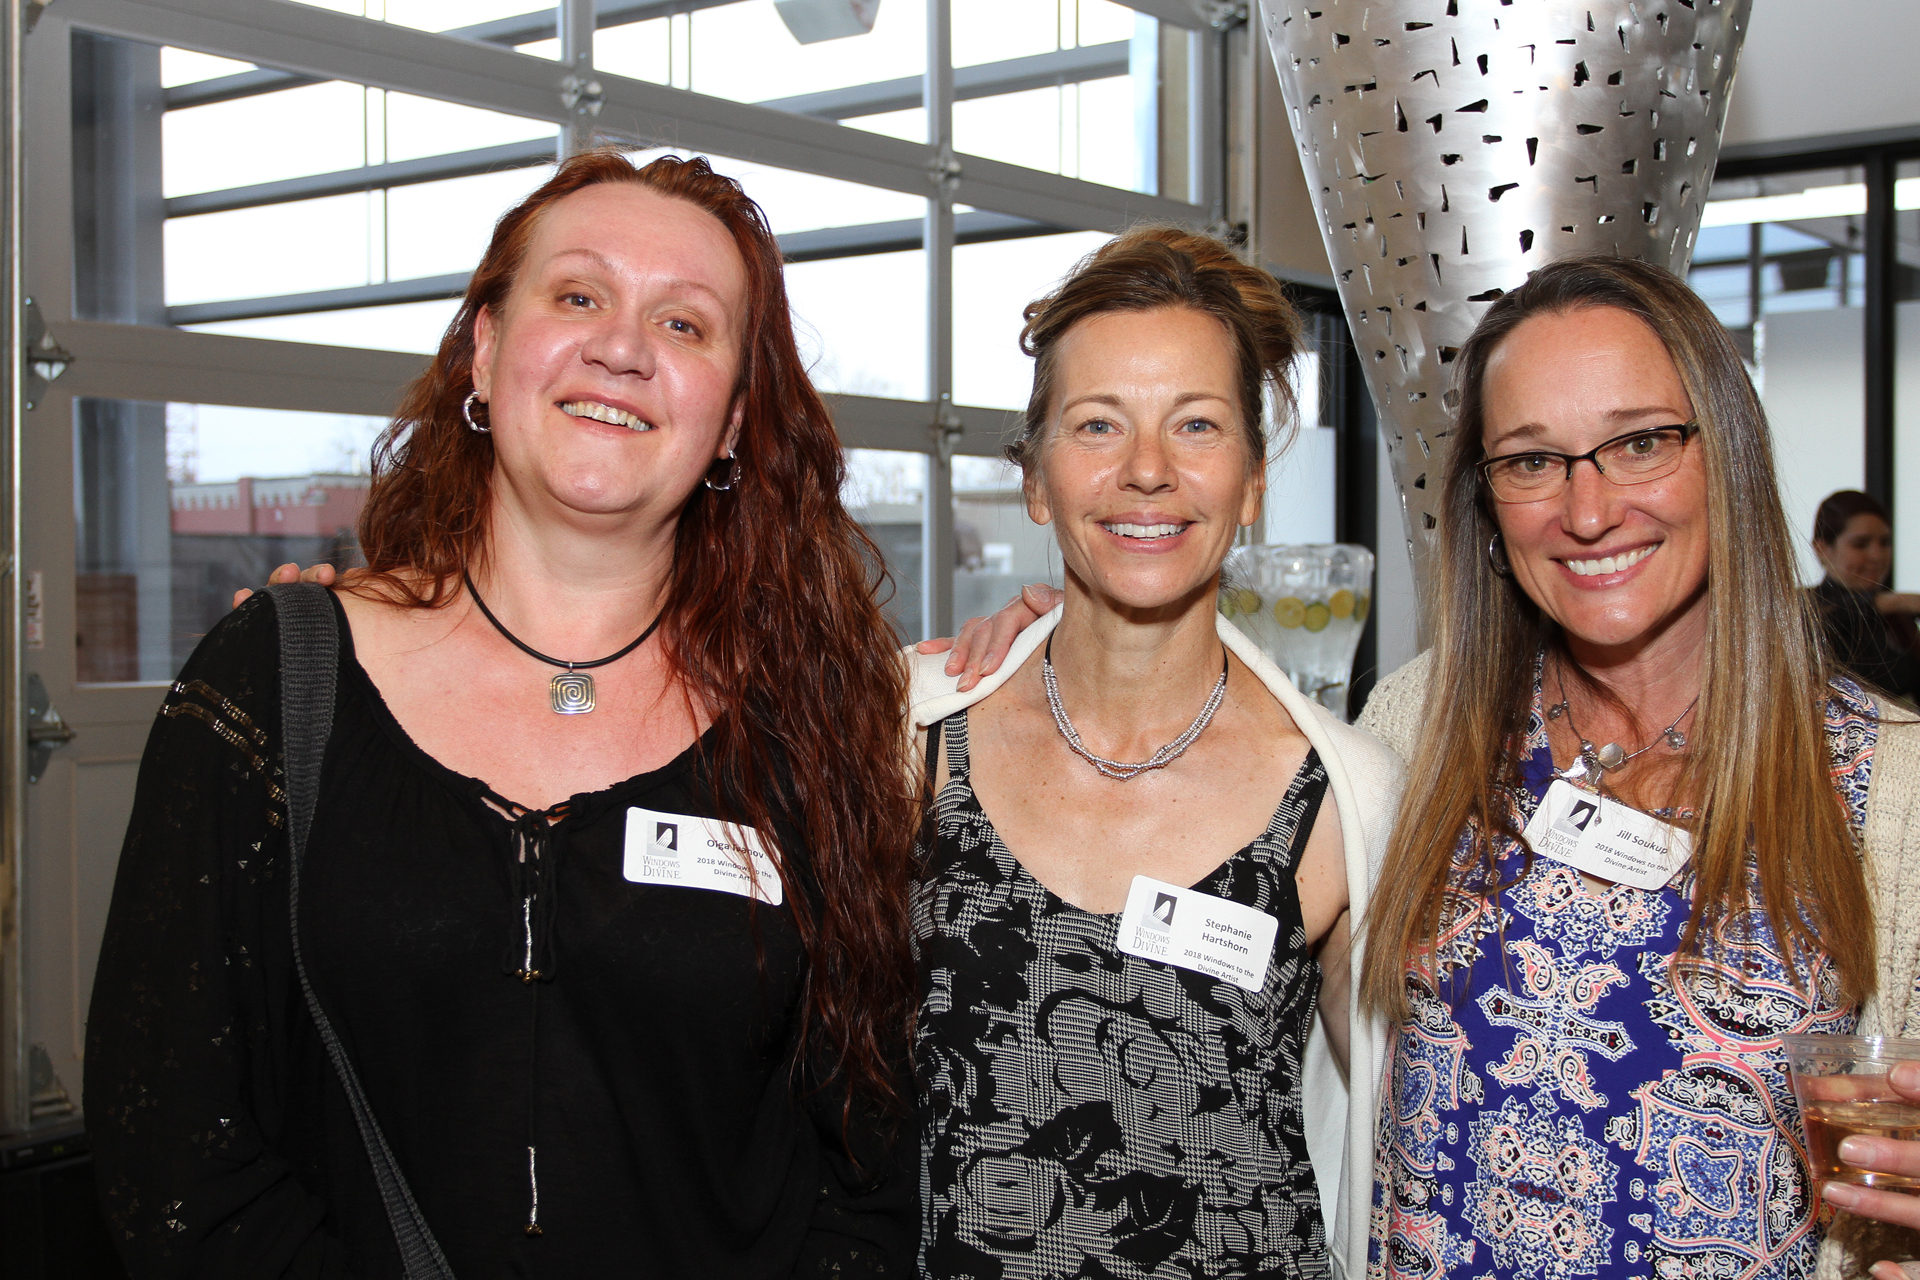 27 – IMG_5065_Opening Gala_Windows 2018 Artists, Olga Ivanov, Stephanie Hartshorn & Jill Soukup